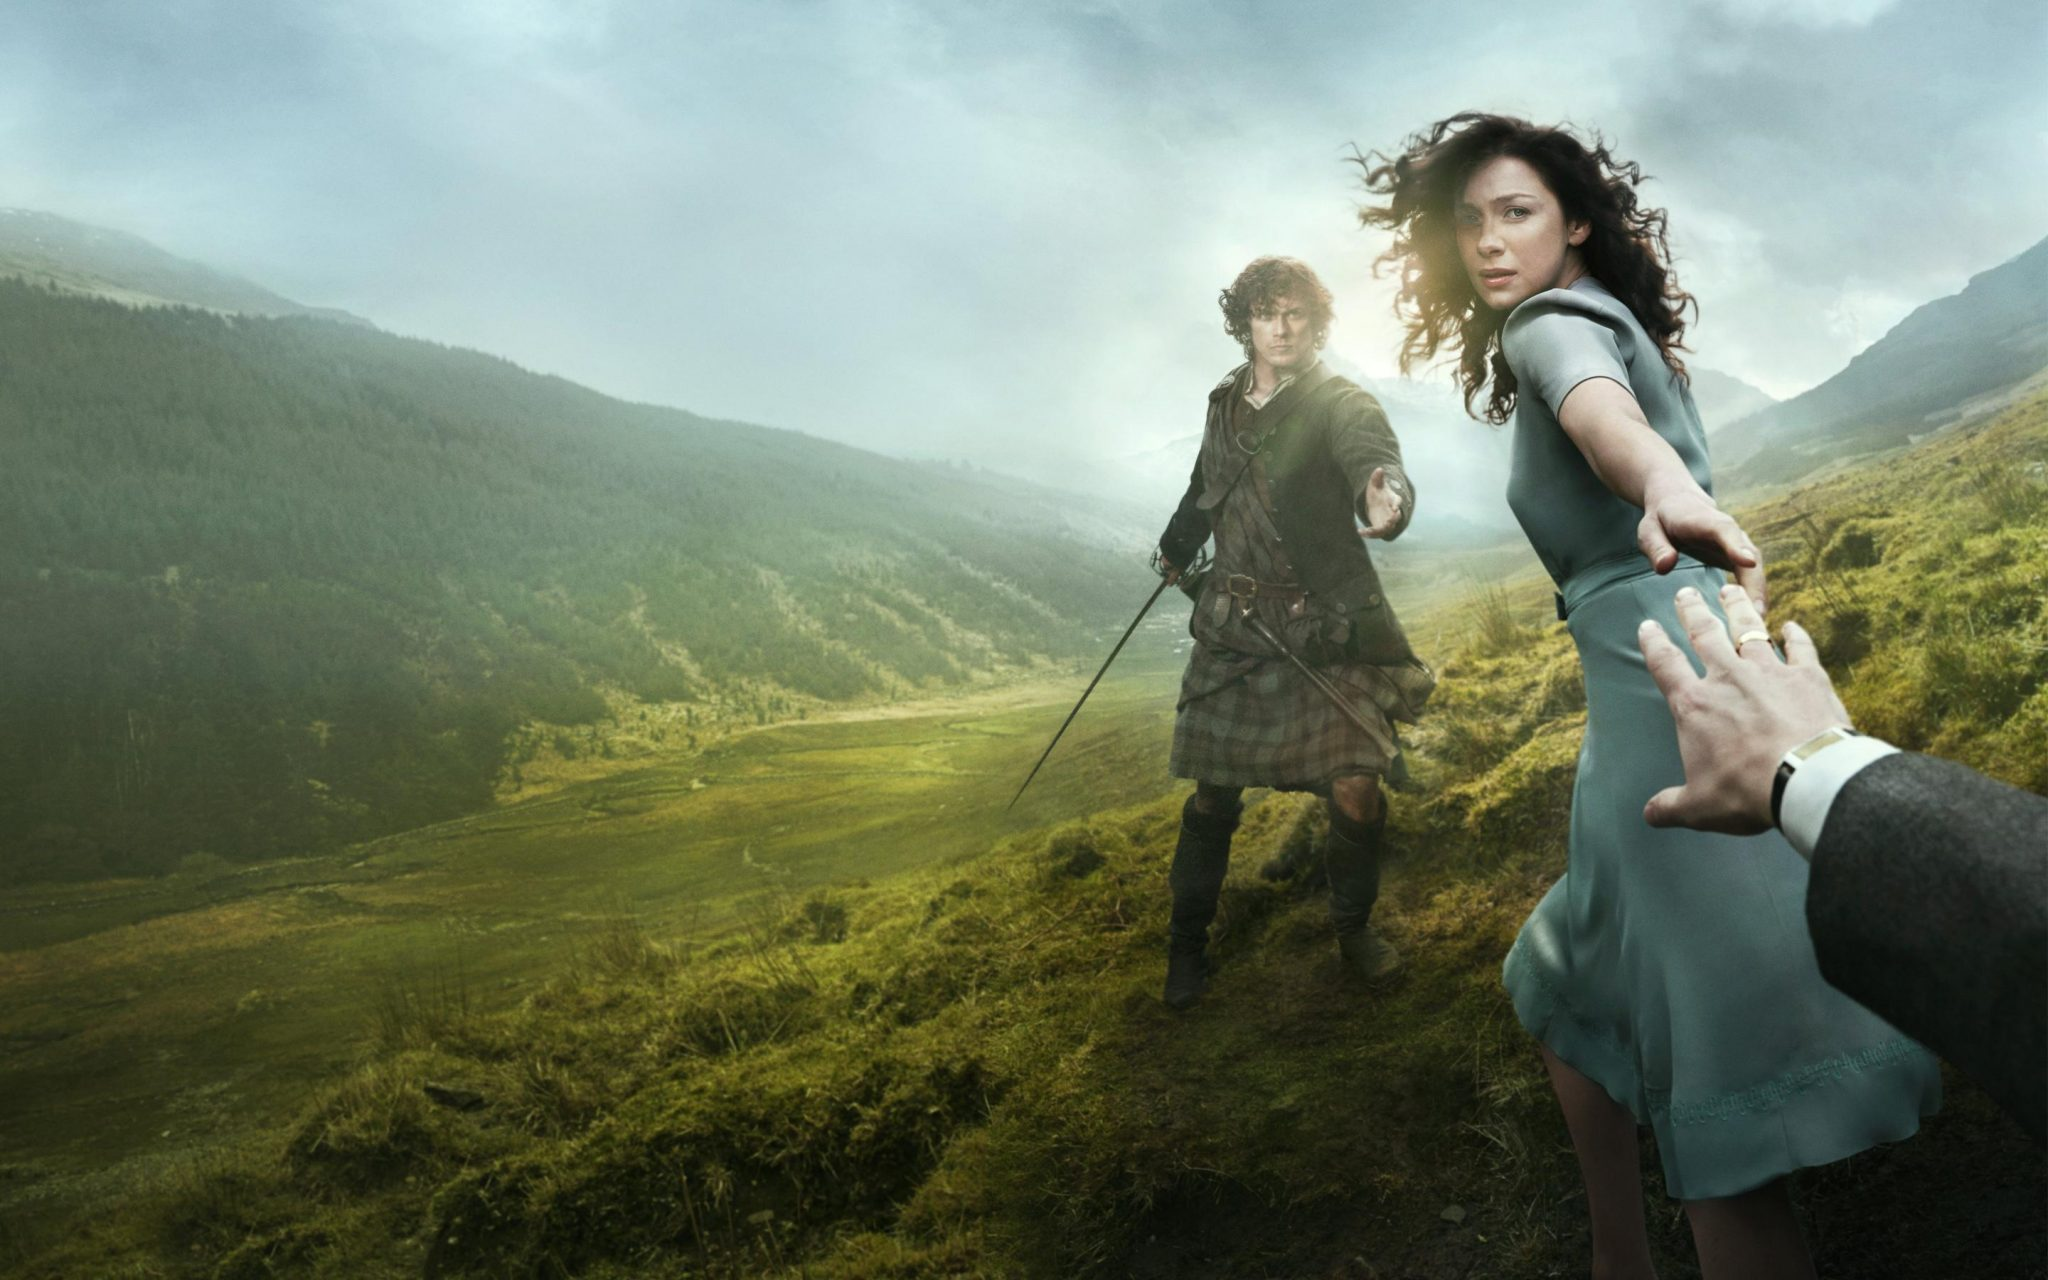 Outlander détrônera-t-il Game of Thrones ?